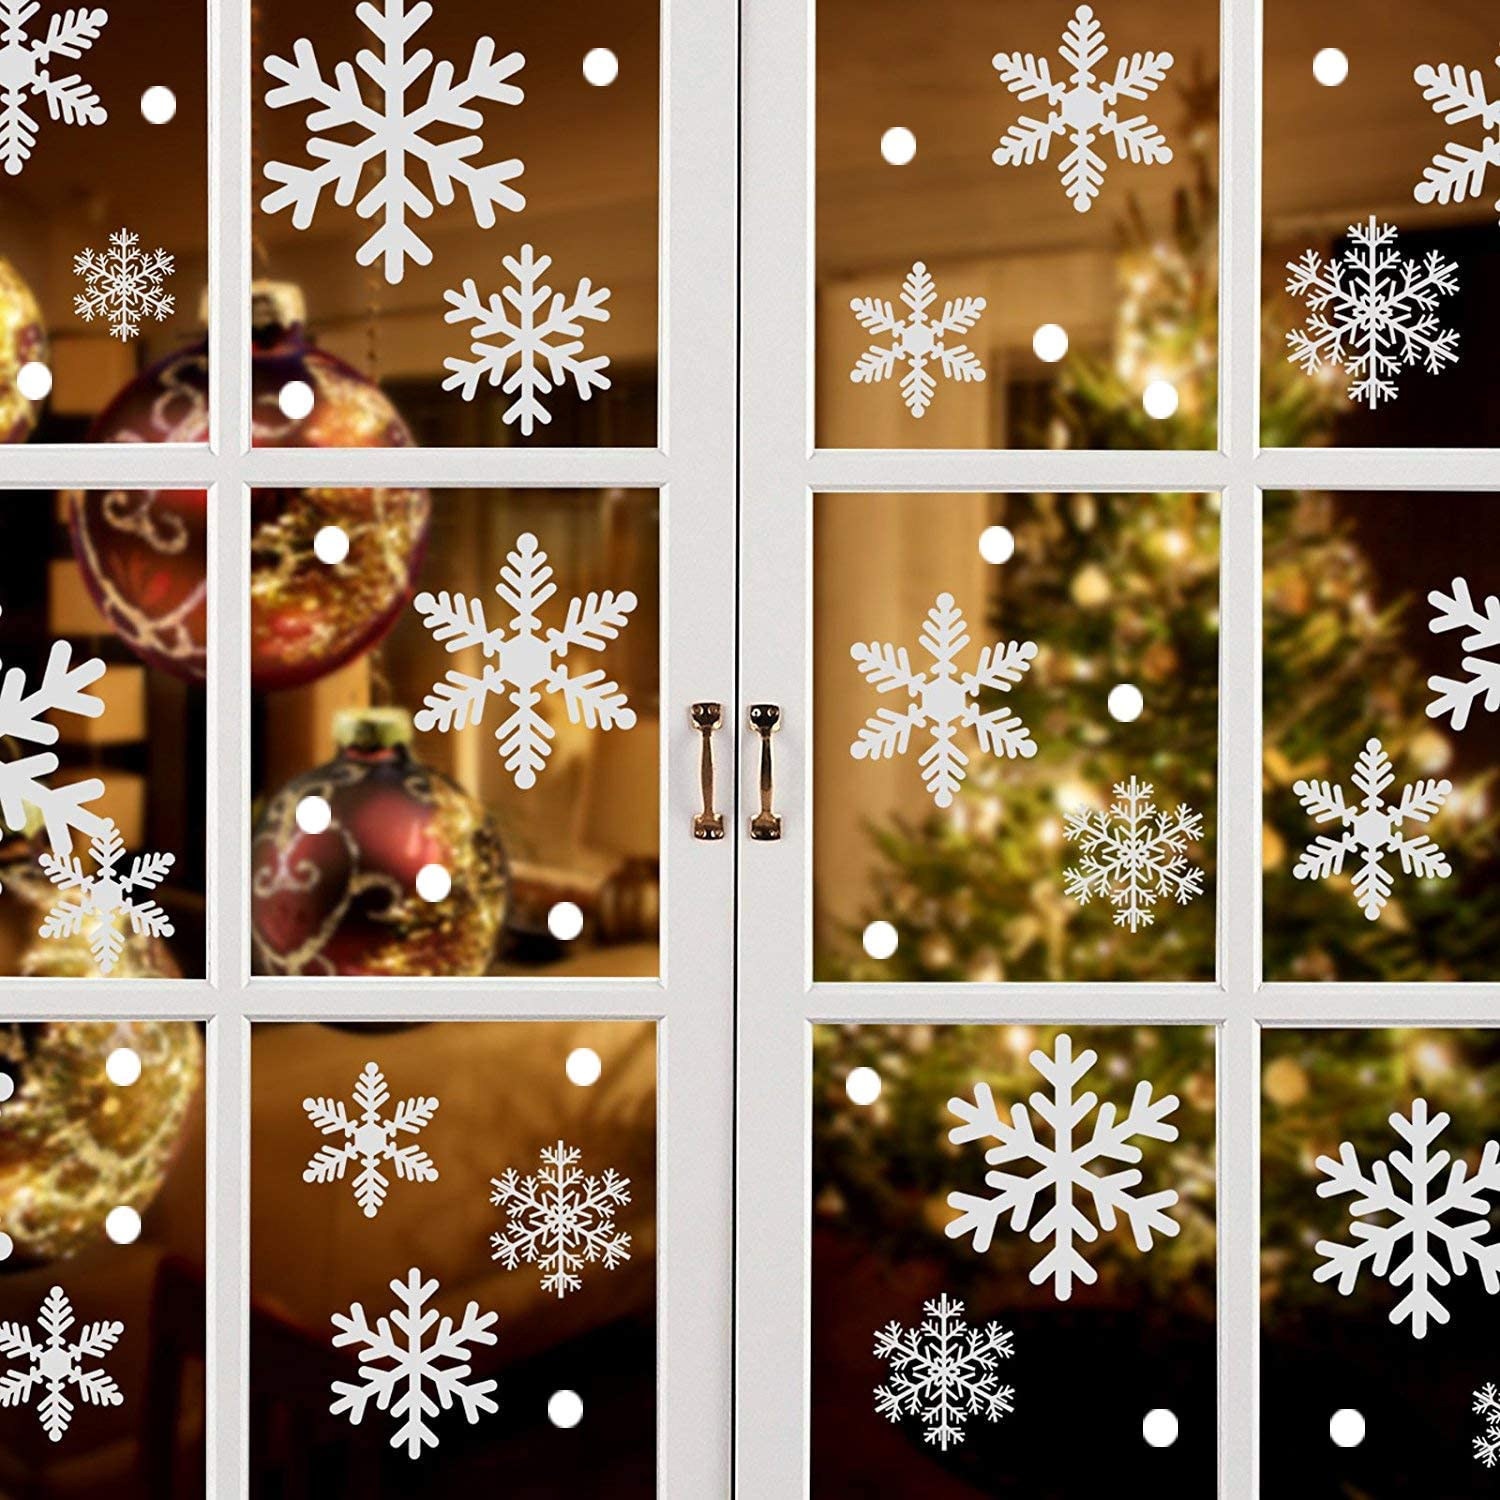 Lcymom 200+ Snowflake Window Clings Christmas Decorations Snowflake Stickers DIY Party Supplies Winter Window Clings Decor for Coffee House Restaurant Showcase Dress Shop(5 Sheets)